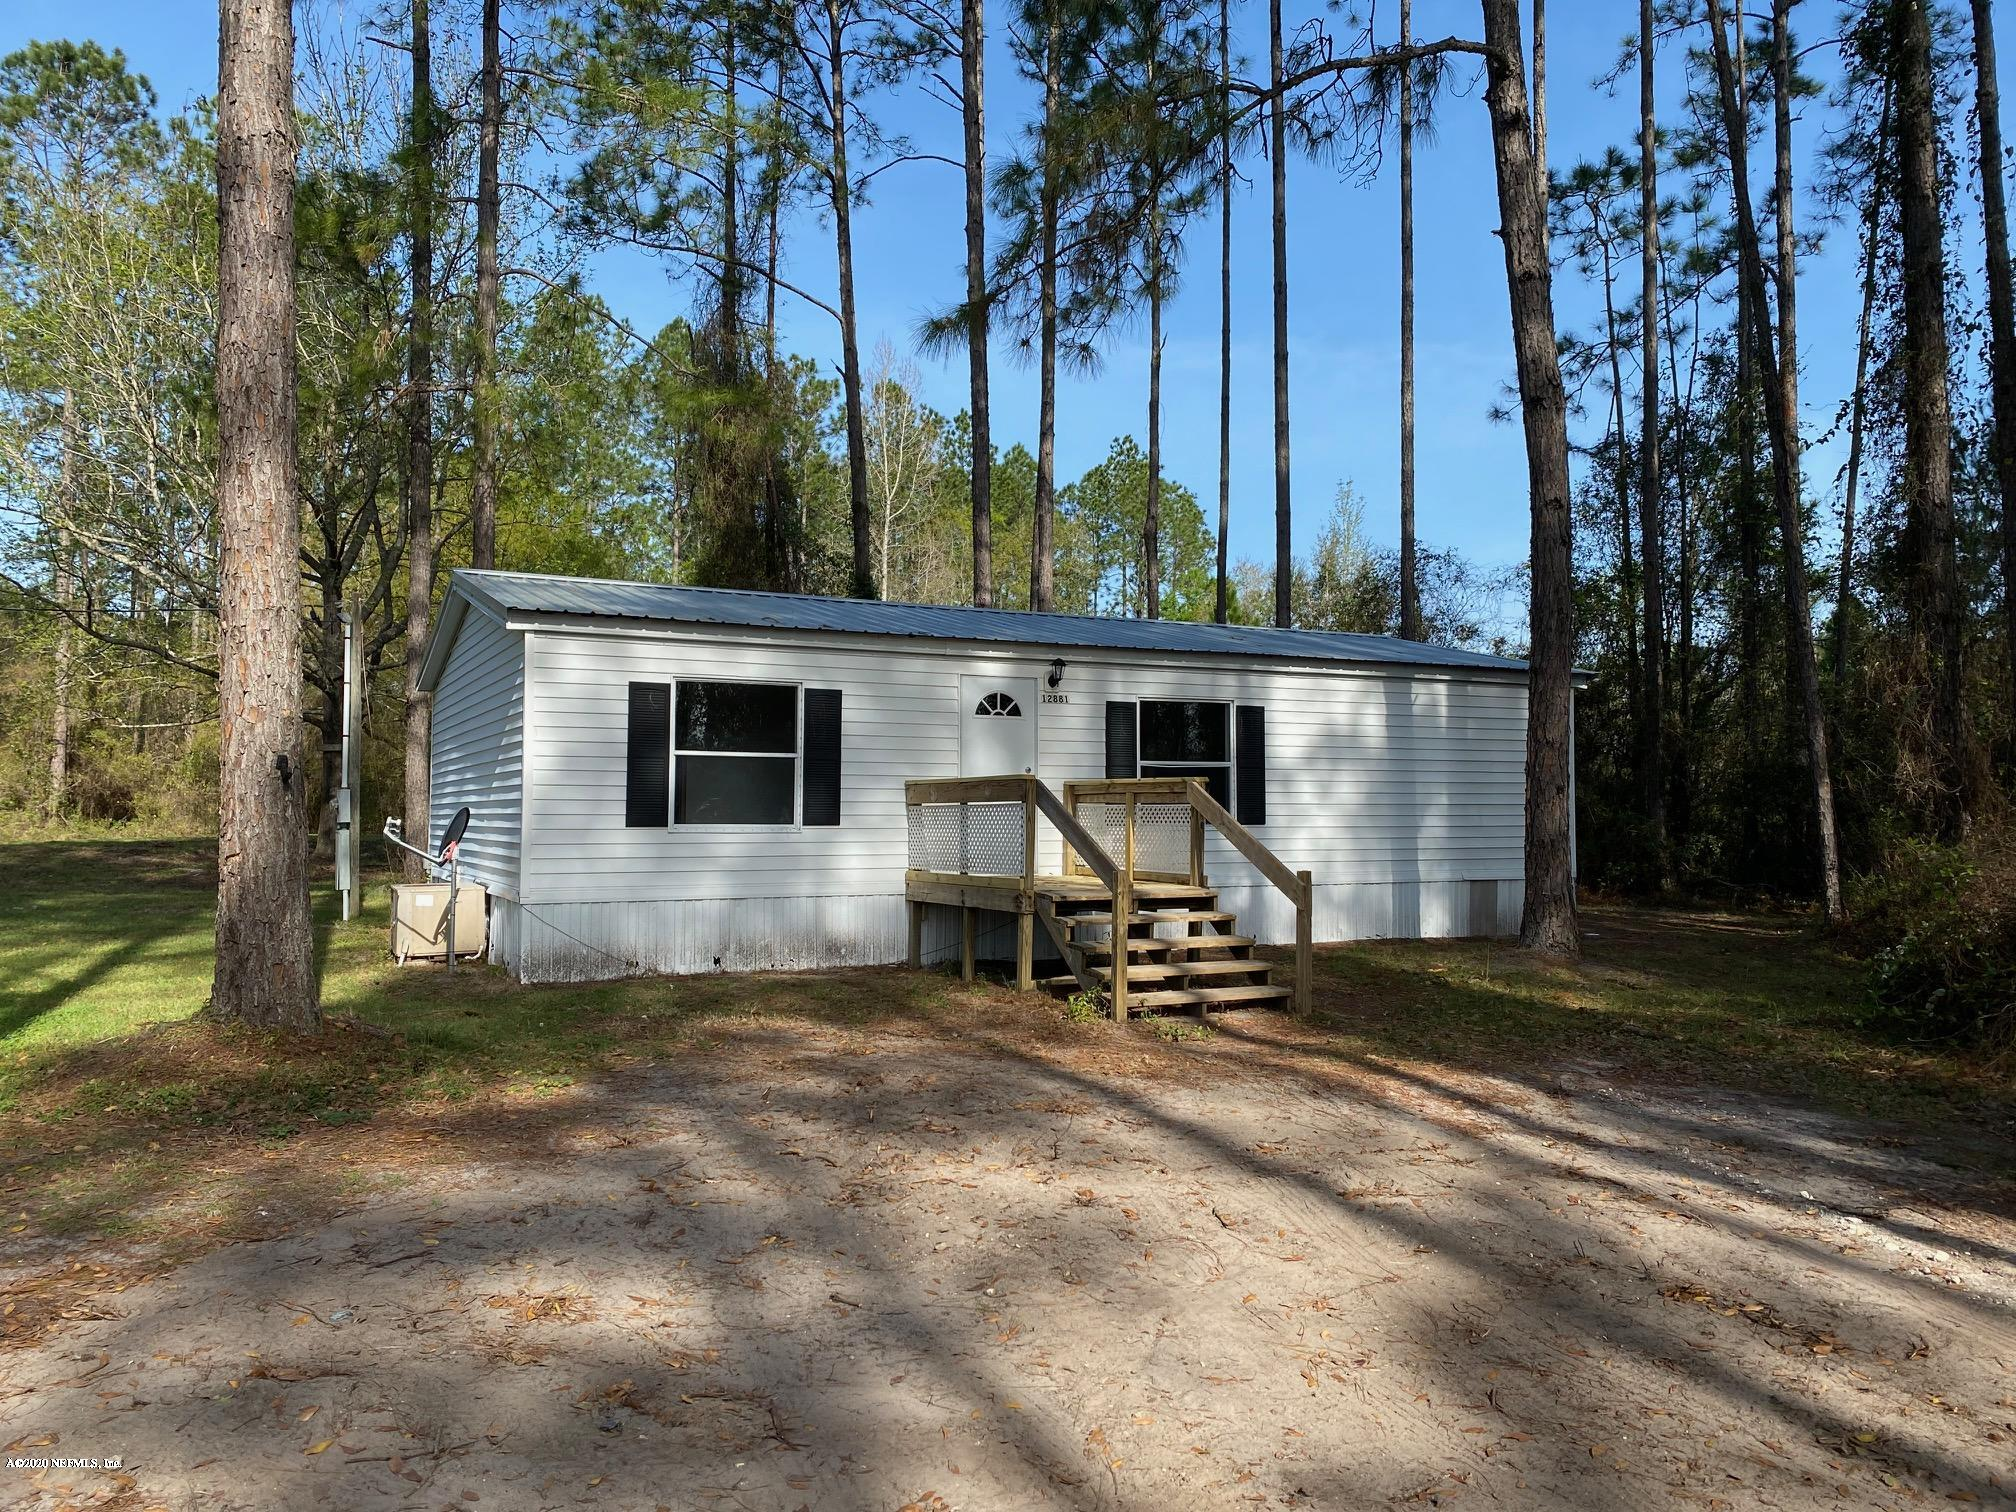 12881 89TH, LAKE BUTLER, FLORIDA 32054, 2 Bedrooms Bedrooms, ,2 BathroomsBathrooms,Residential,For sale,89TH,1043465